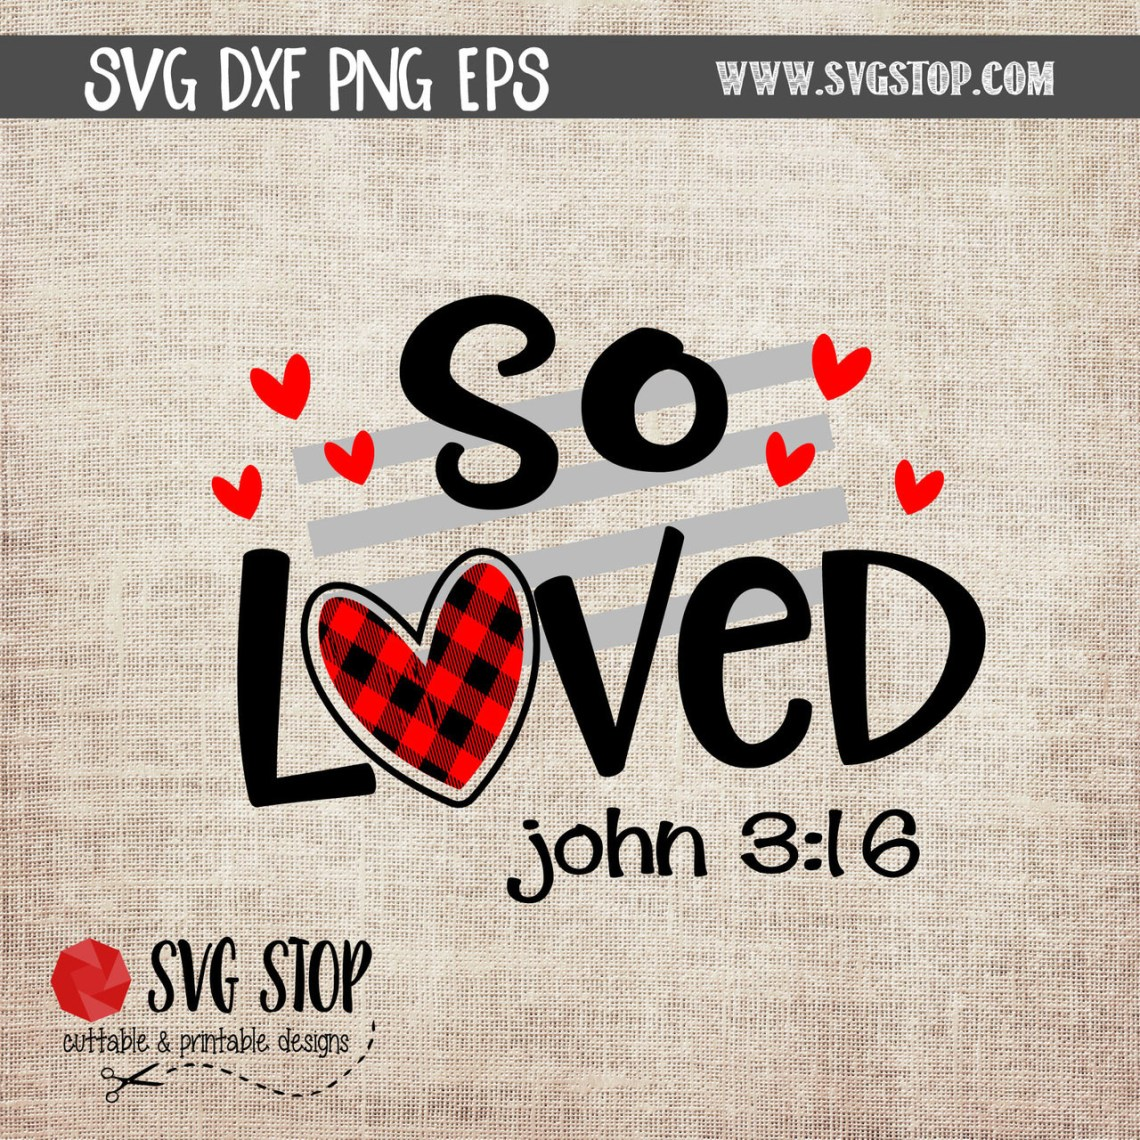 Download So Loved 3:16 Cut File Clipart | The SVG Stop